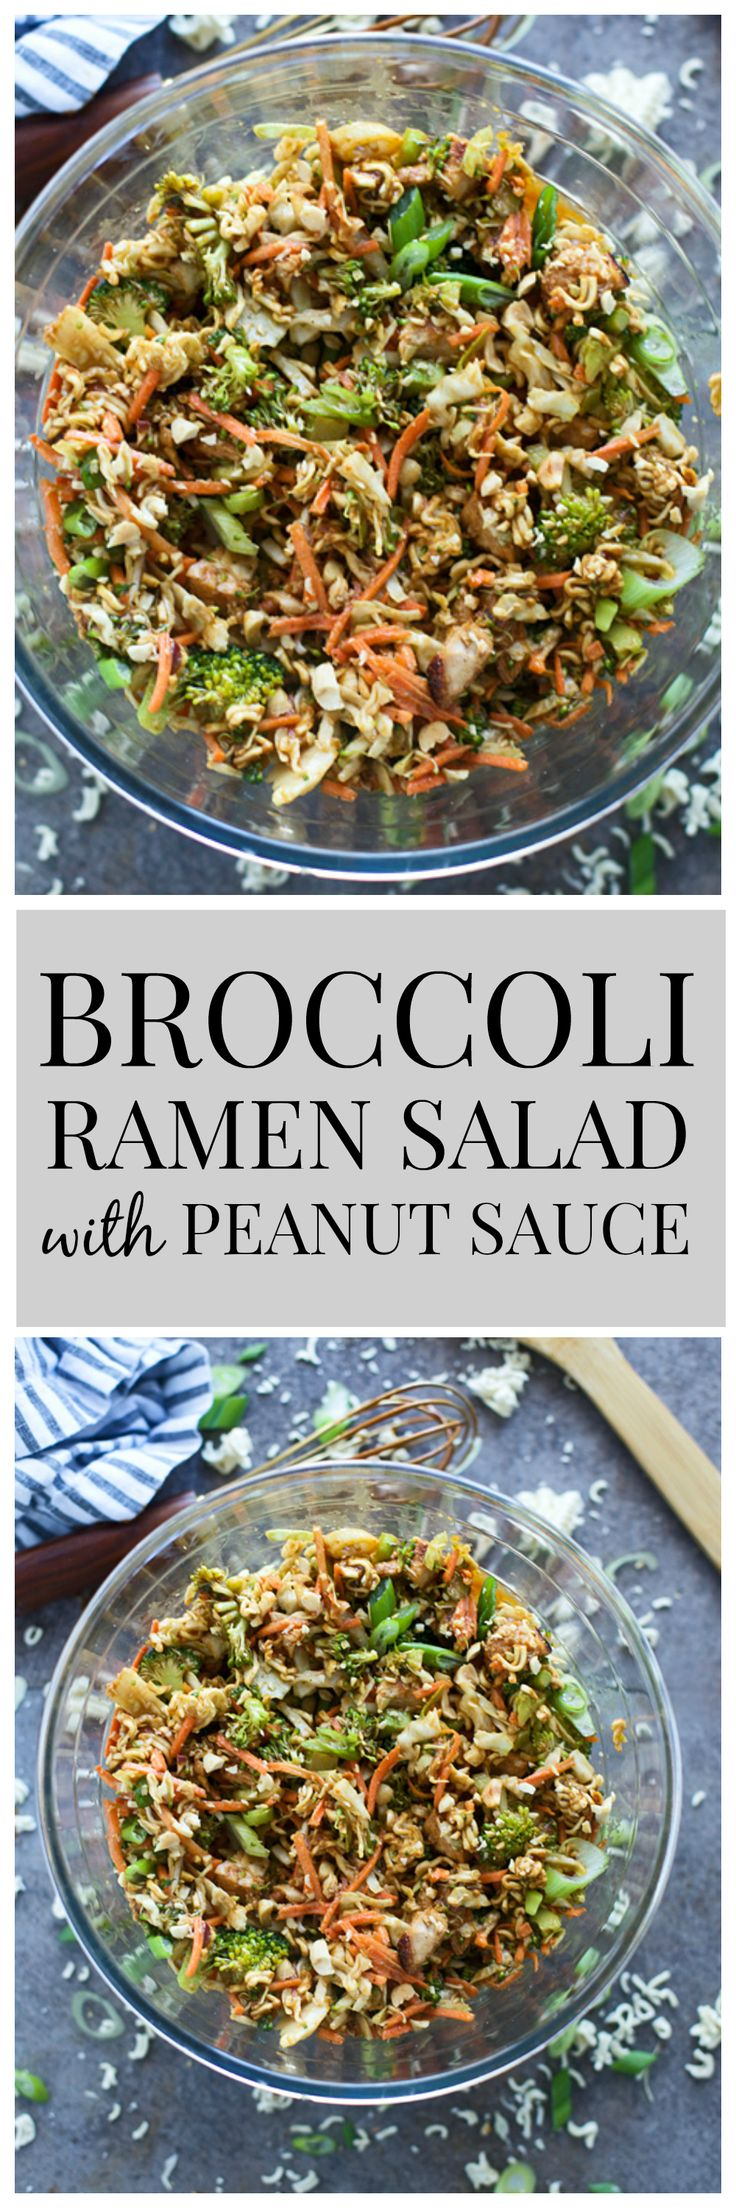 Broccoli Ramen Salad with Peanut Sauce - An updated take on a classic Asian ramen salad! (Shredded Chicken Curry)